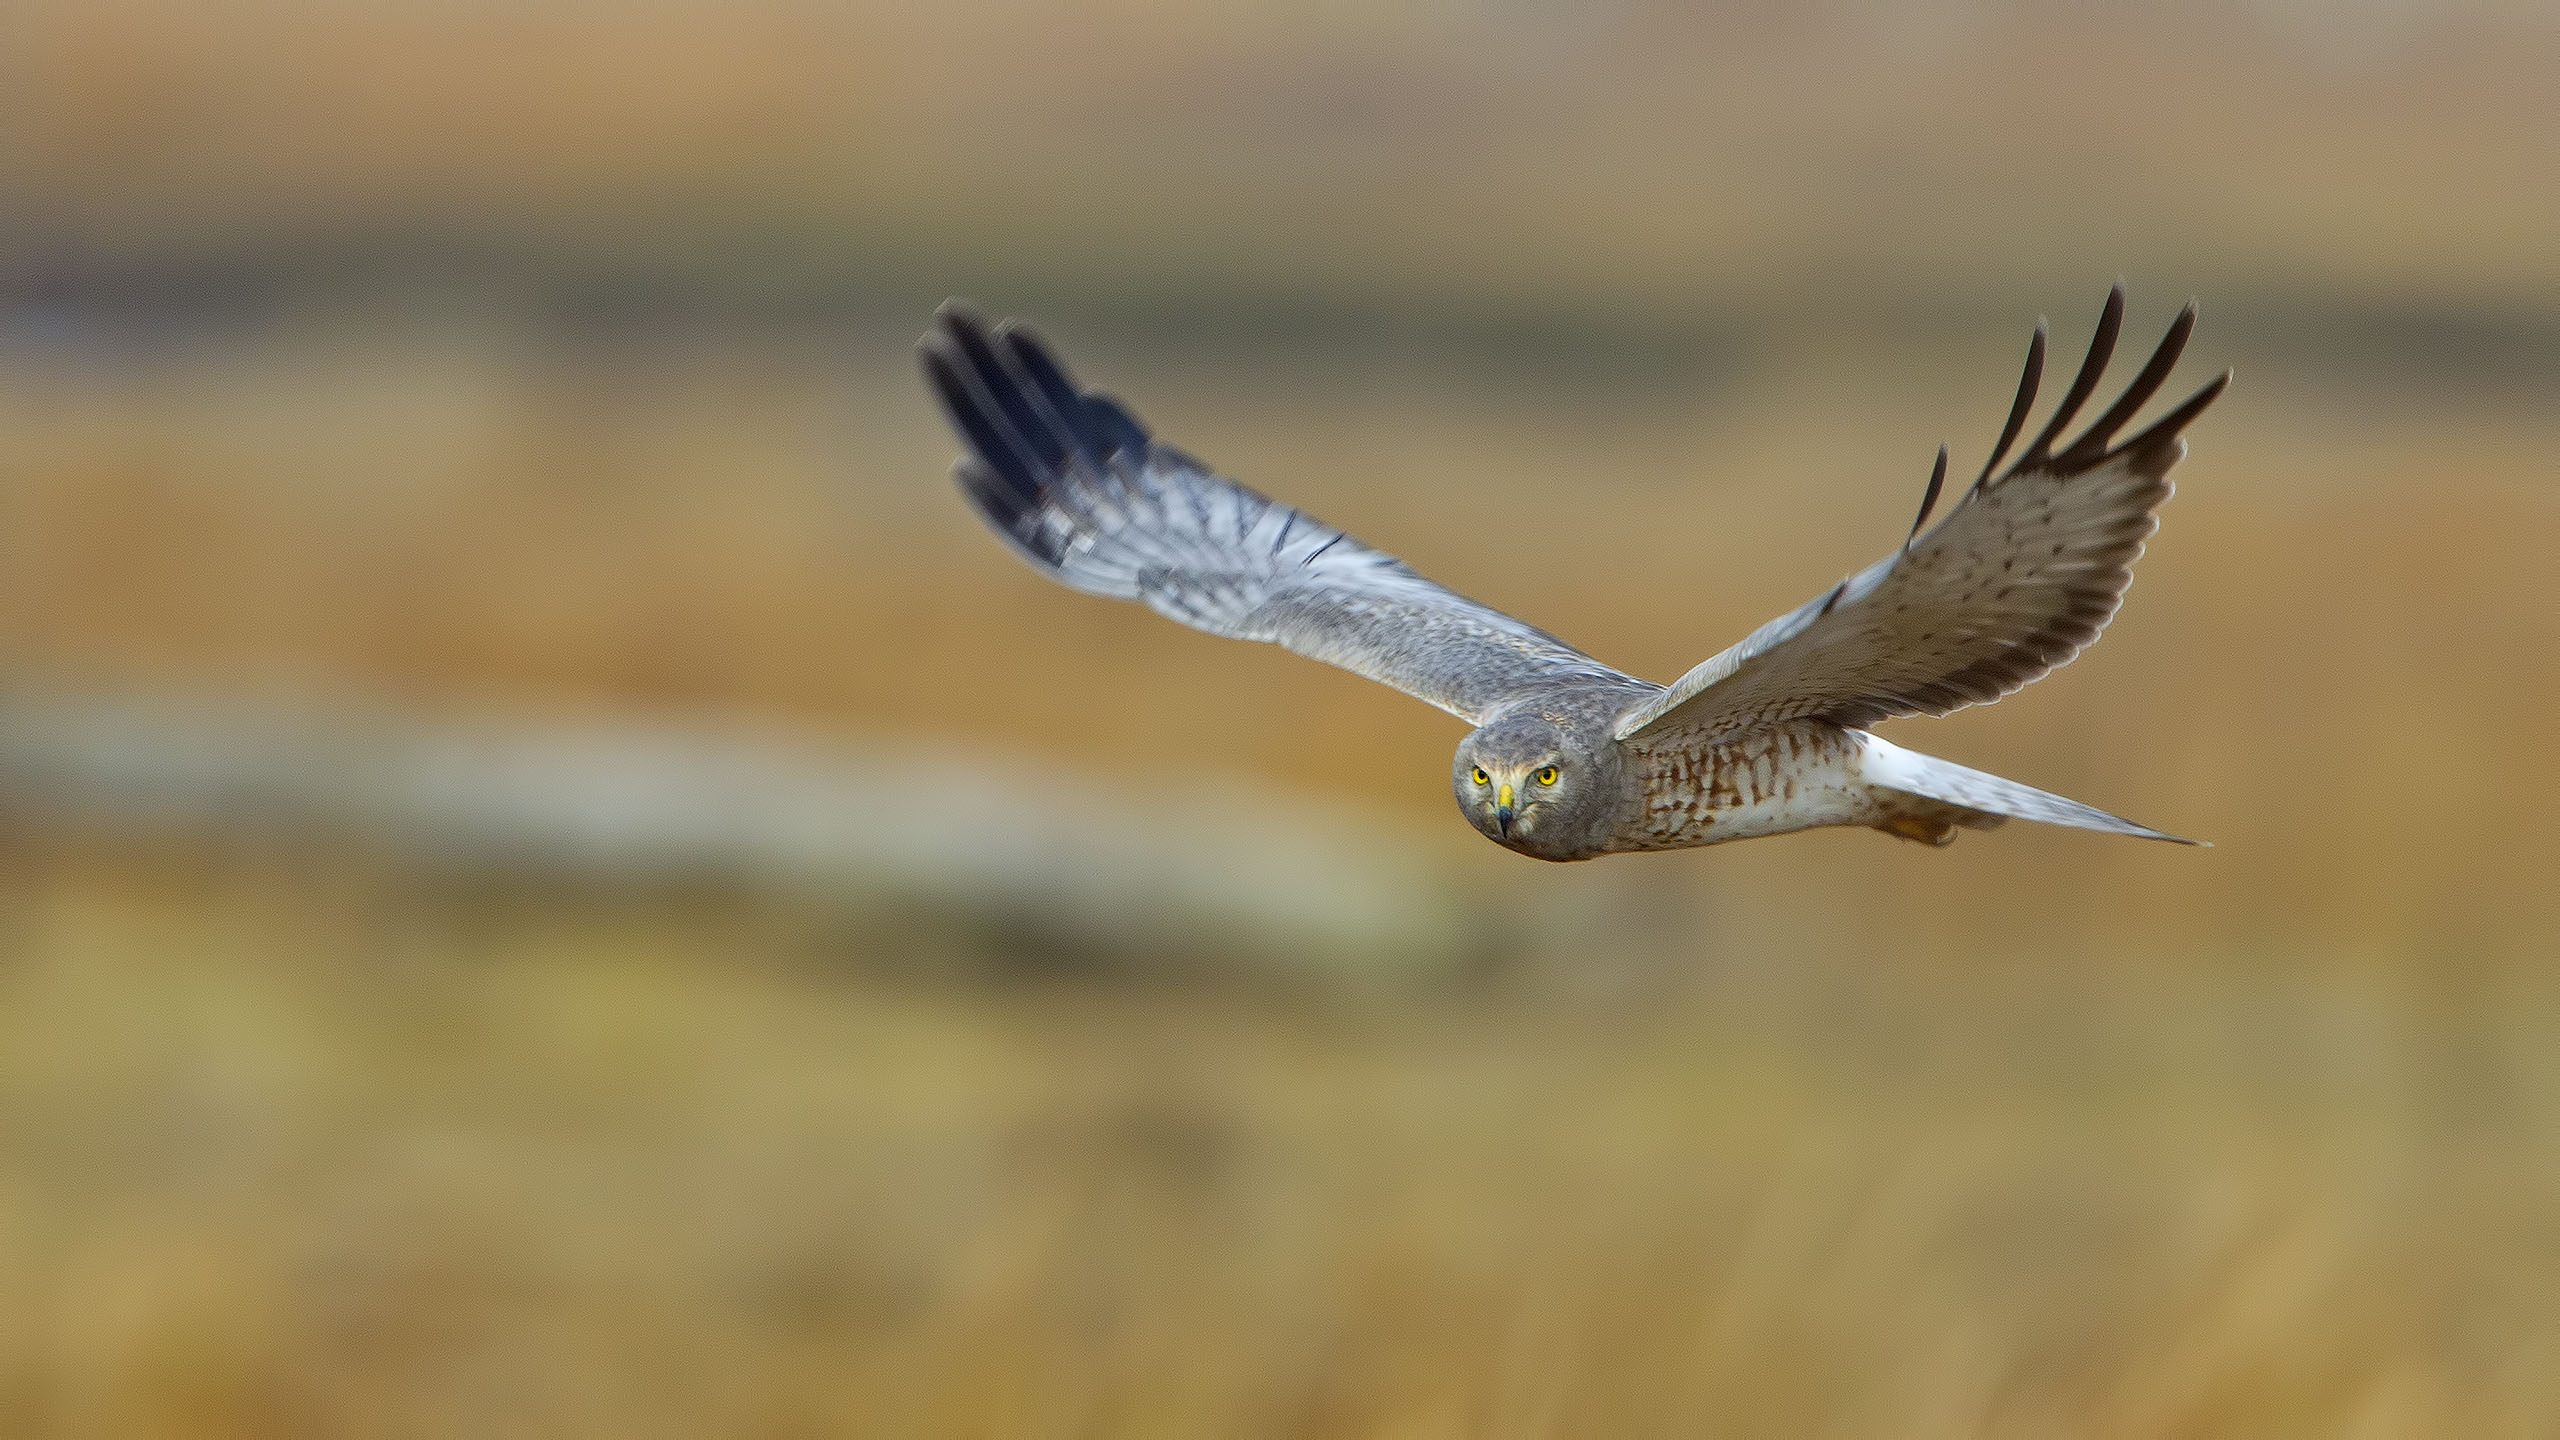 A male Northern Harrier, the gray ghost, keeping an eye on me as it cruised over the marsh at Salisbury Beach State Reservation